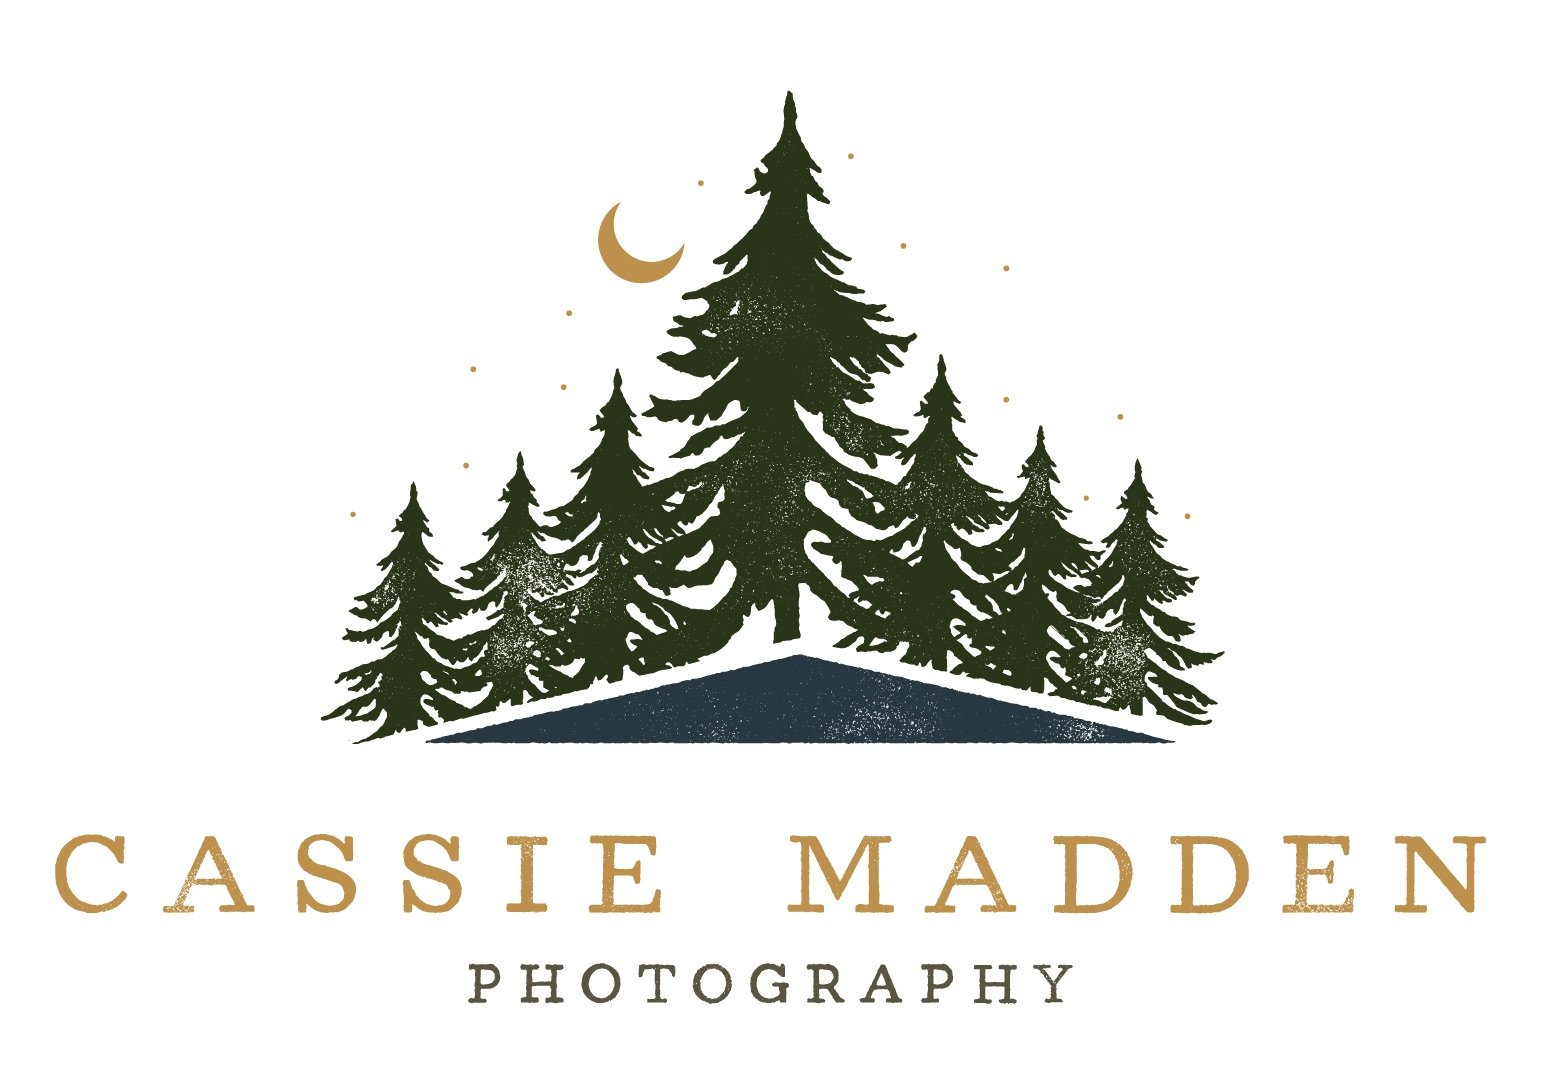 Cassie Madden Photography